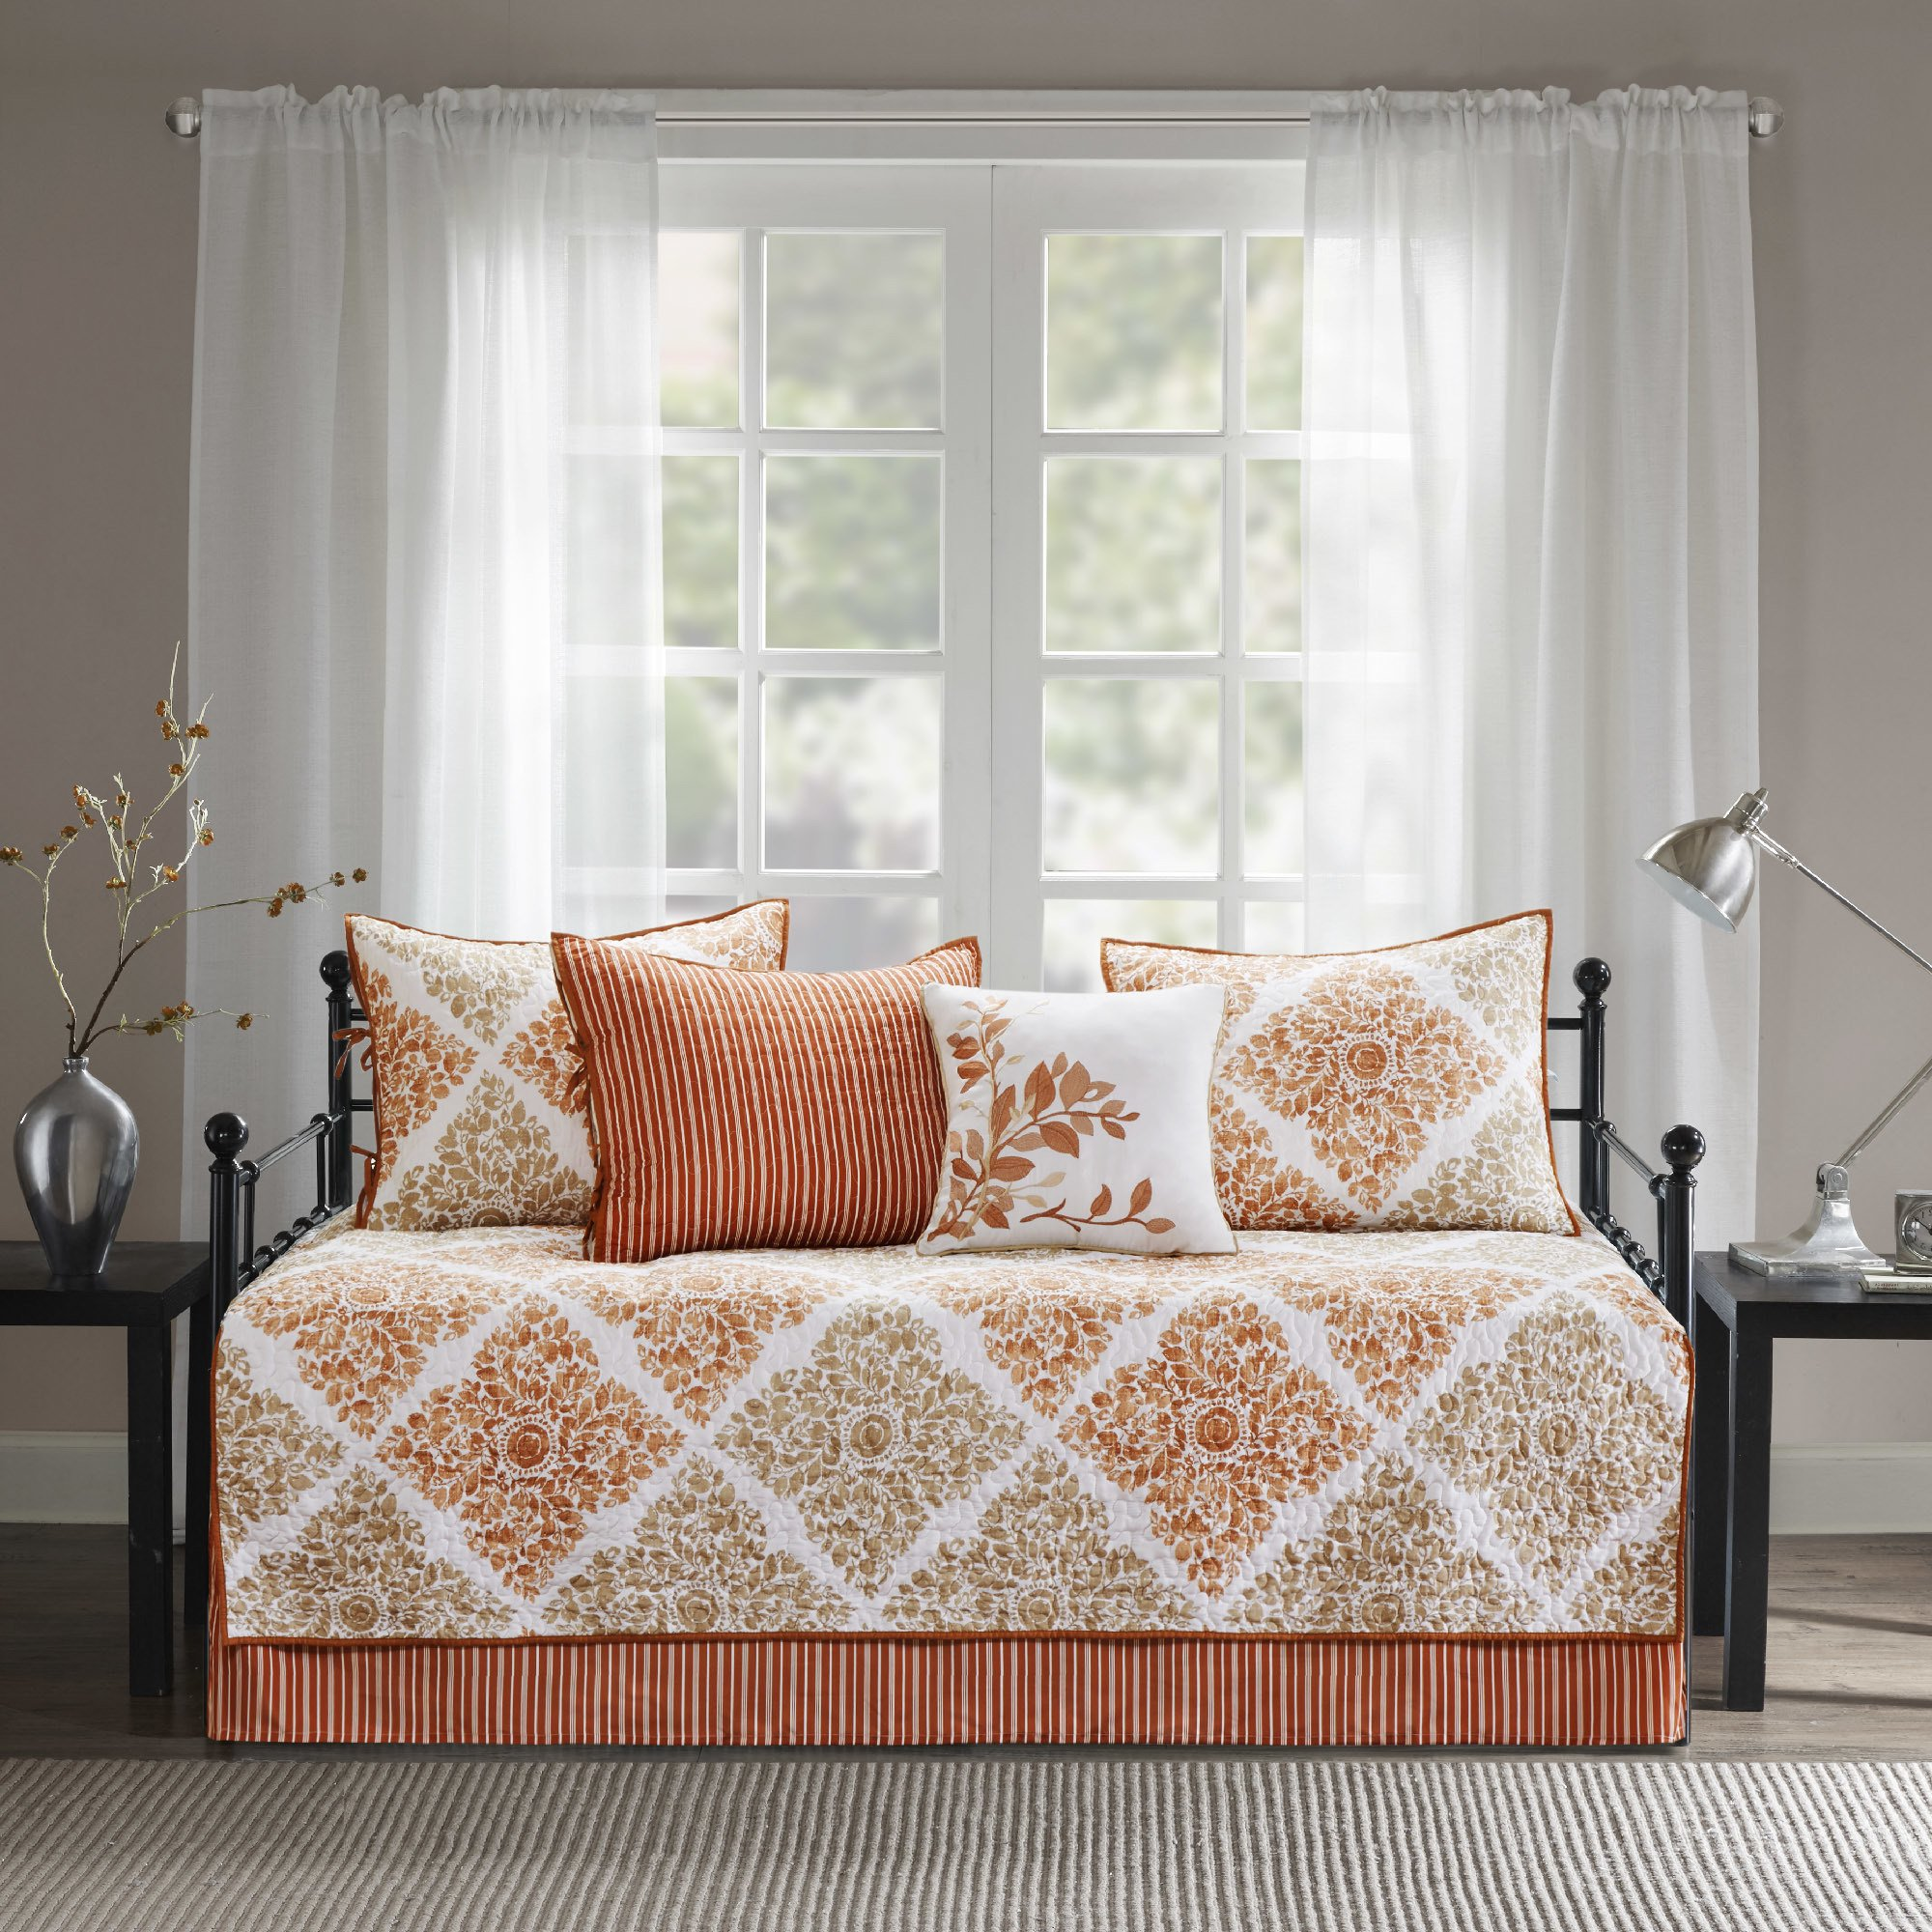 6 Piece Orange White Floral Daybed Set Bedding, Geometric Coastal French Country Shabby Chic Motif Flower Design Pattern Day Bed Bedskirt Pillows, Polyester